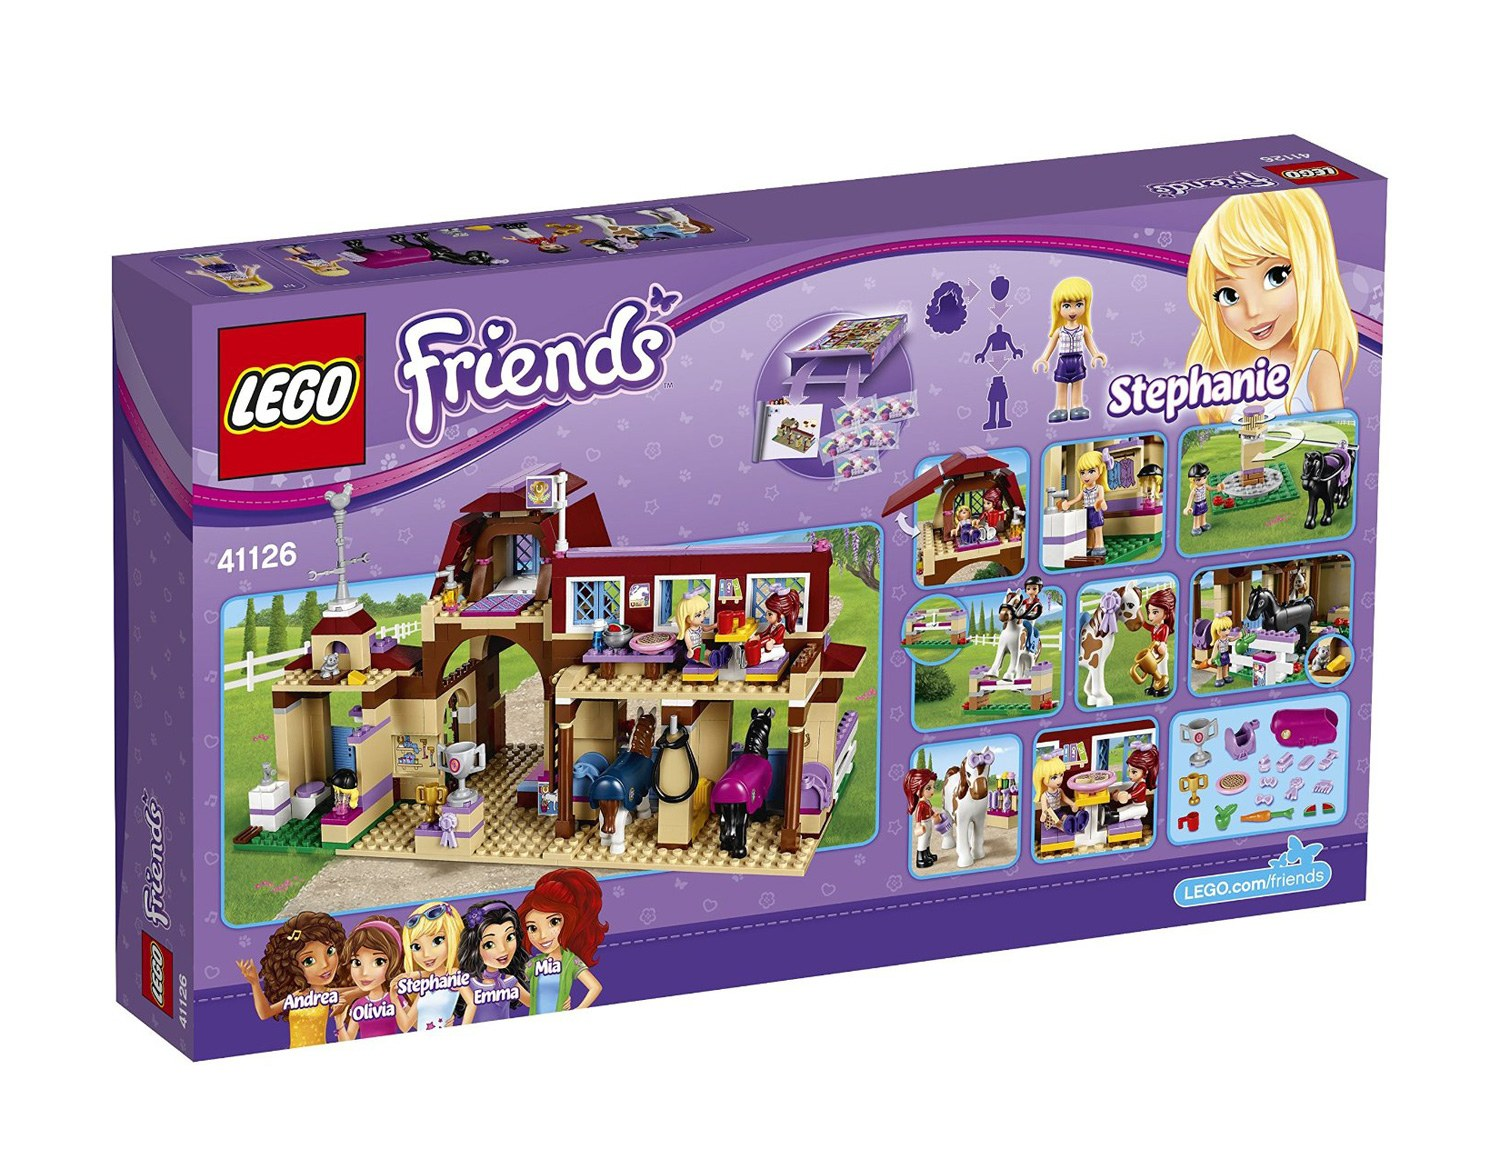 Конструктор Lego серия Lego Friends Клуб верховой езды (41126), фото